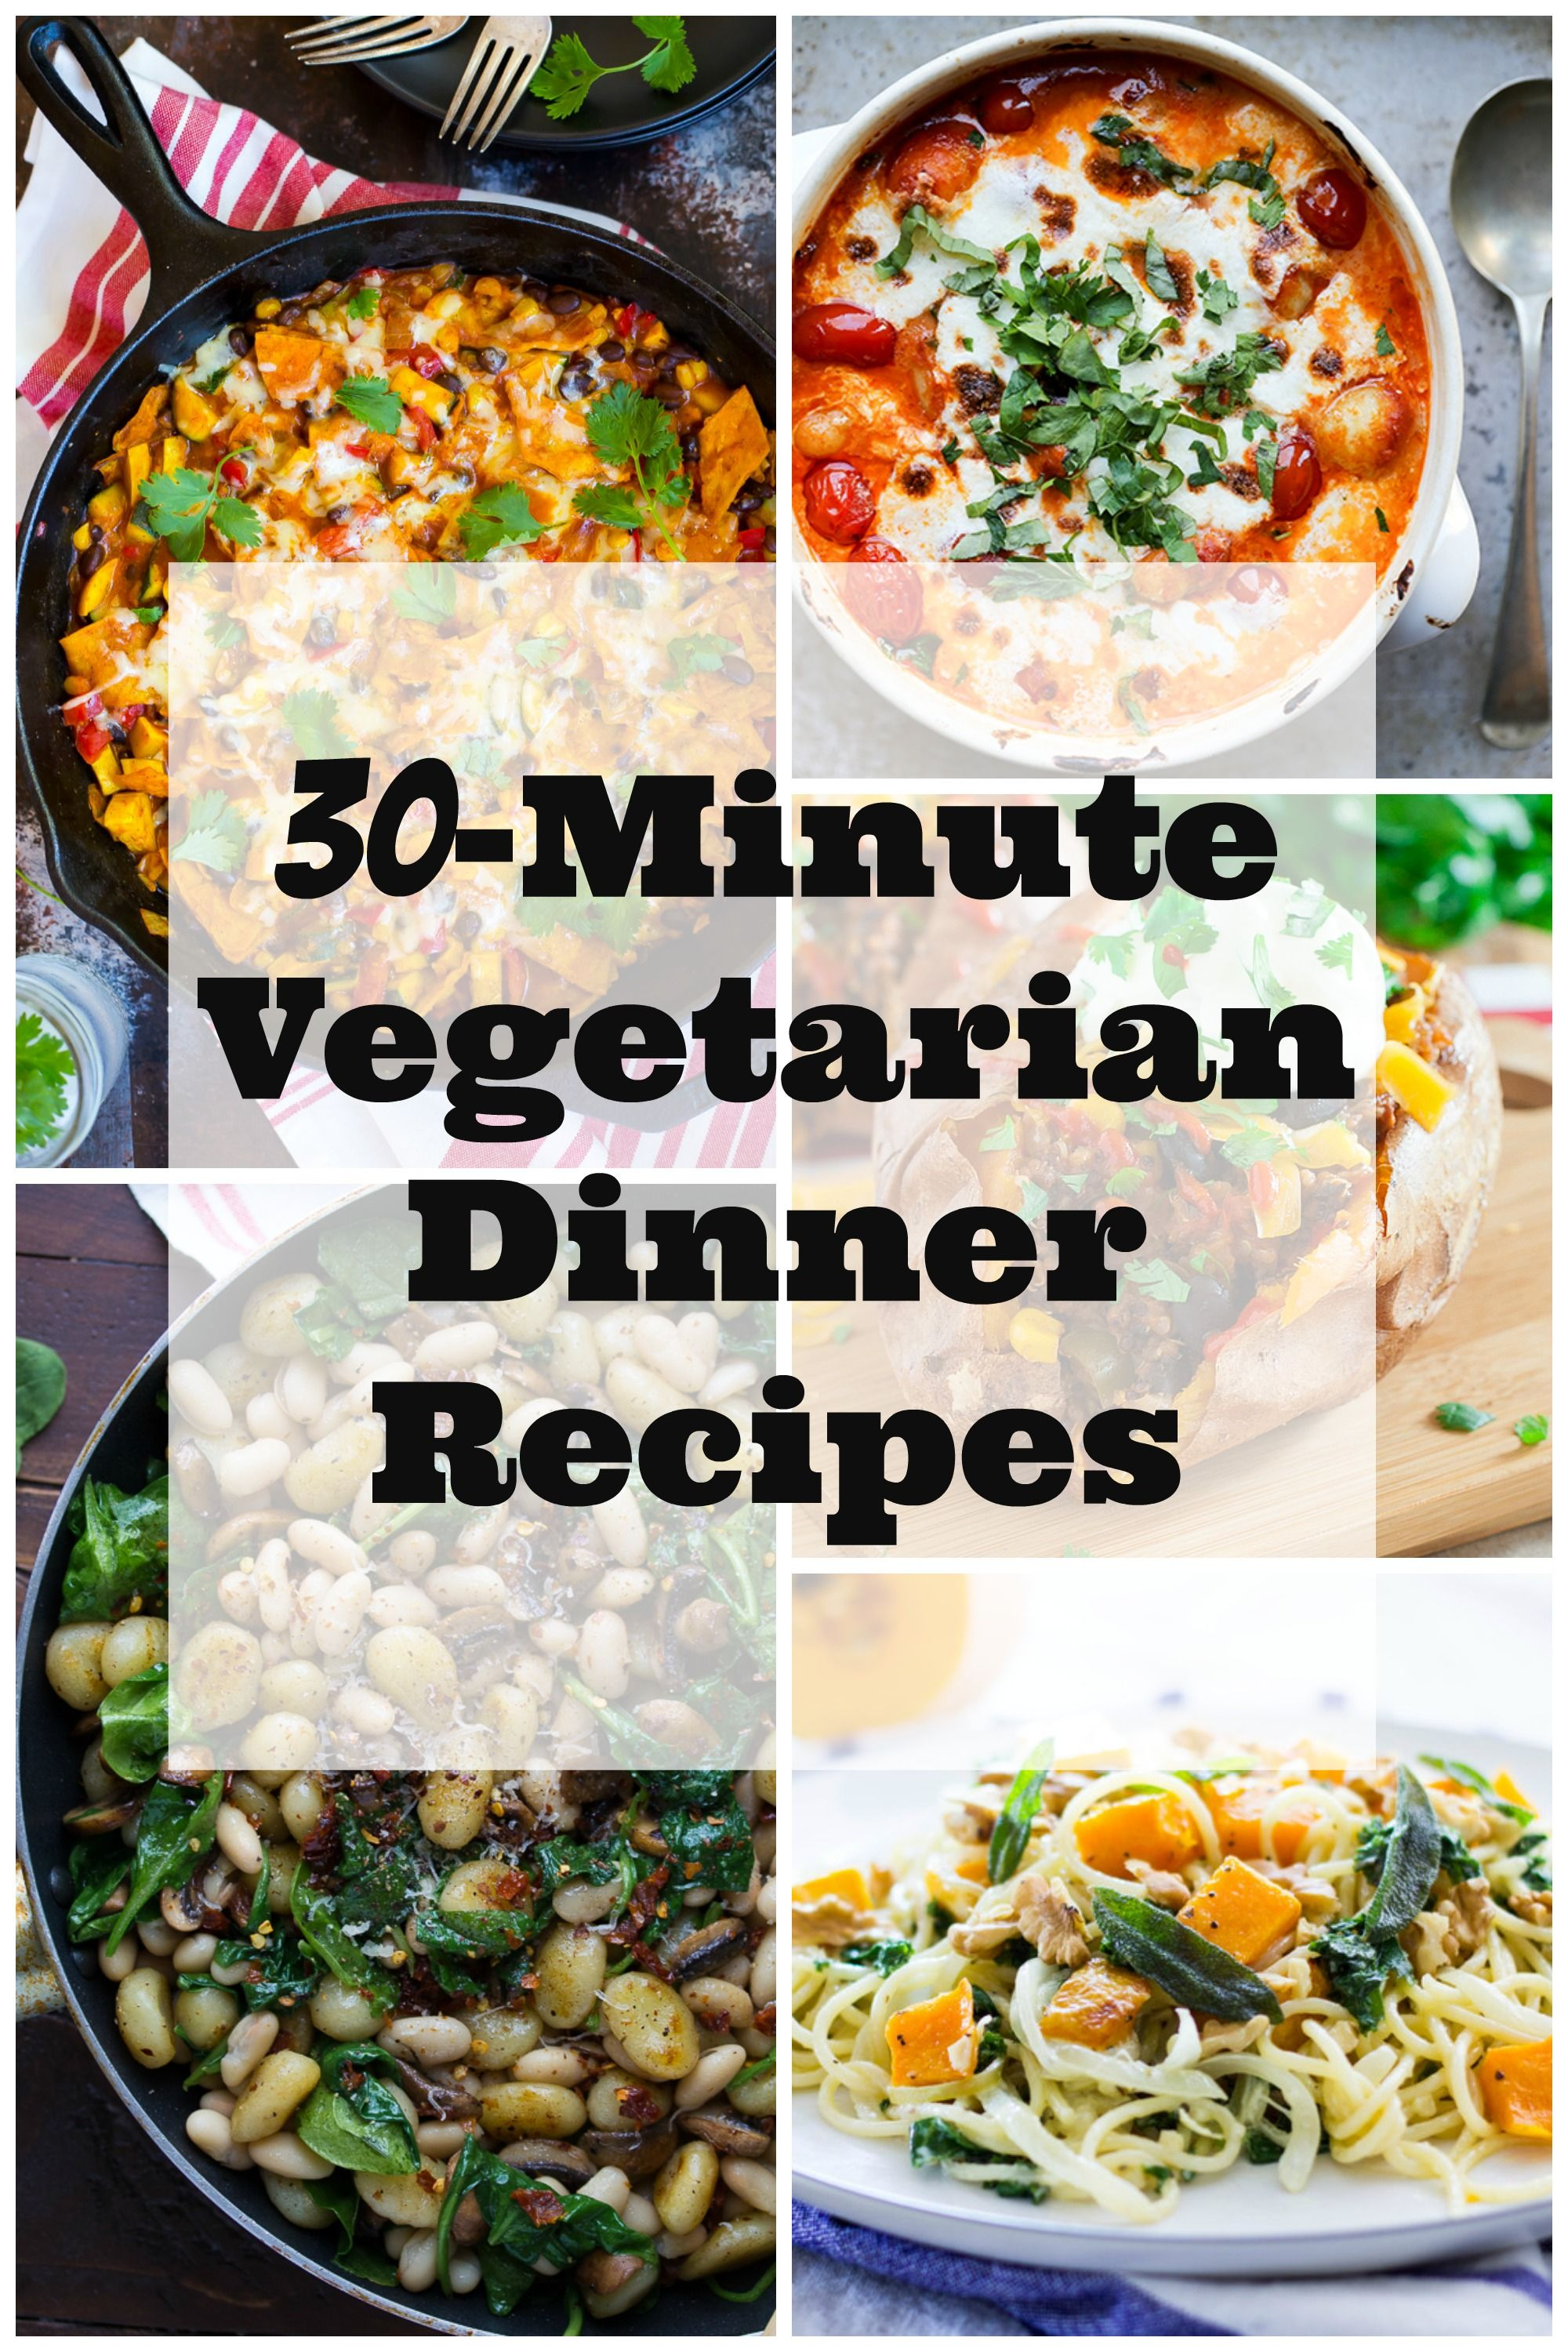 30Minute Vegetarian Dinner Recipes! Tons of delicious and